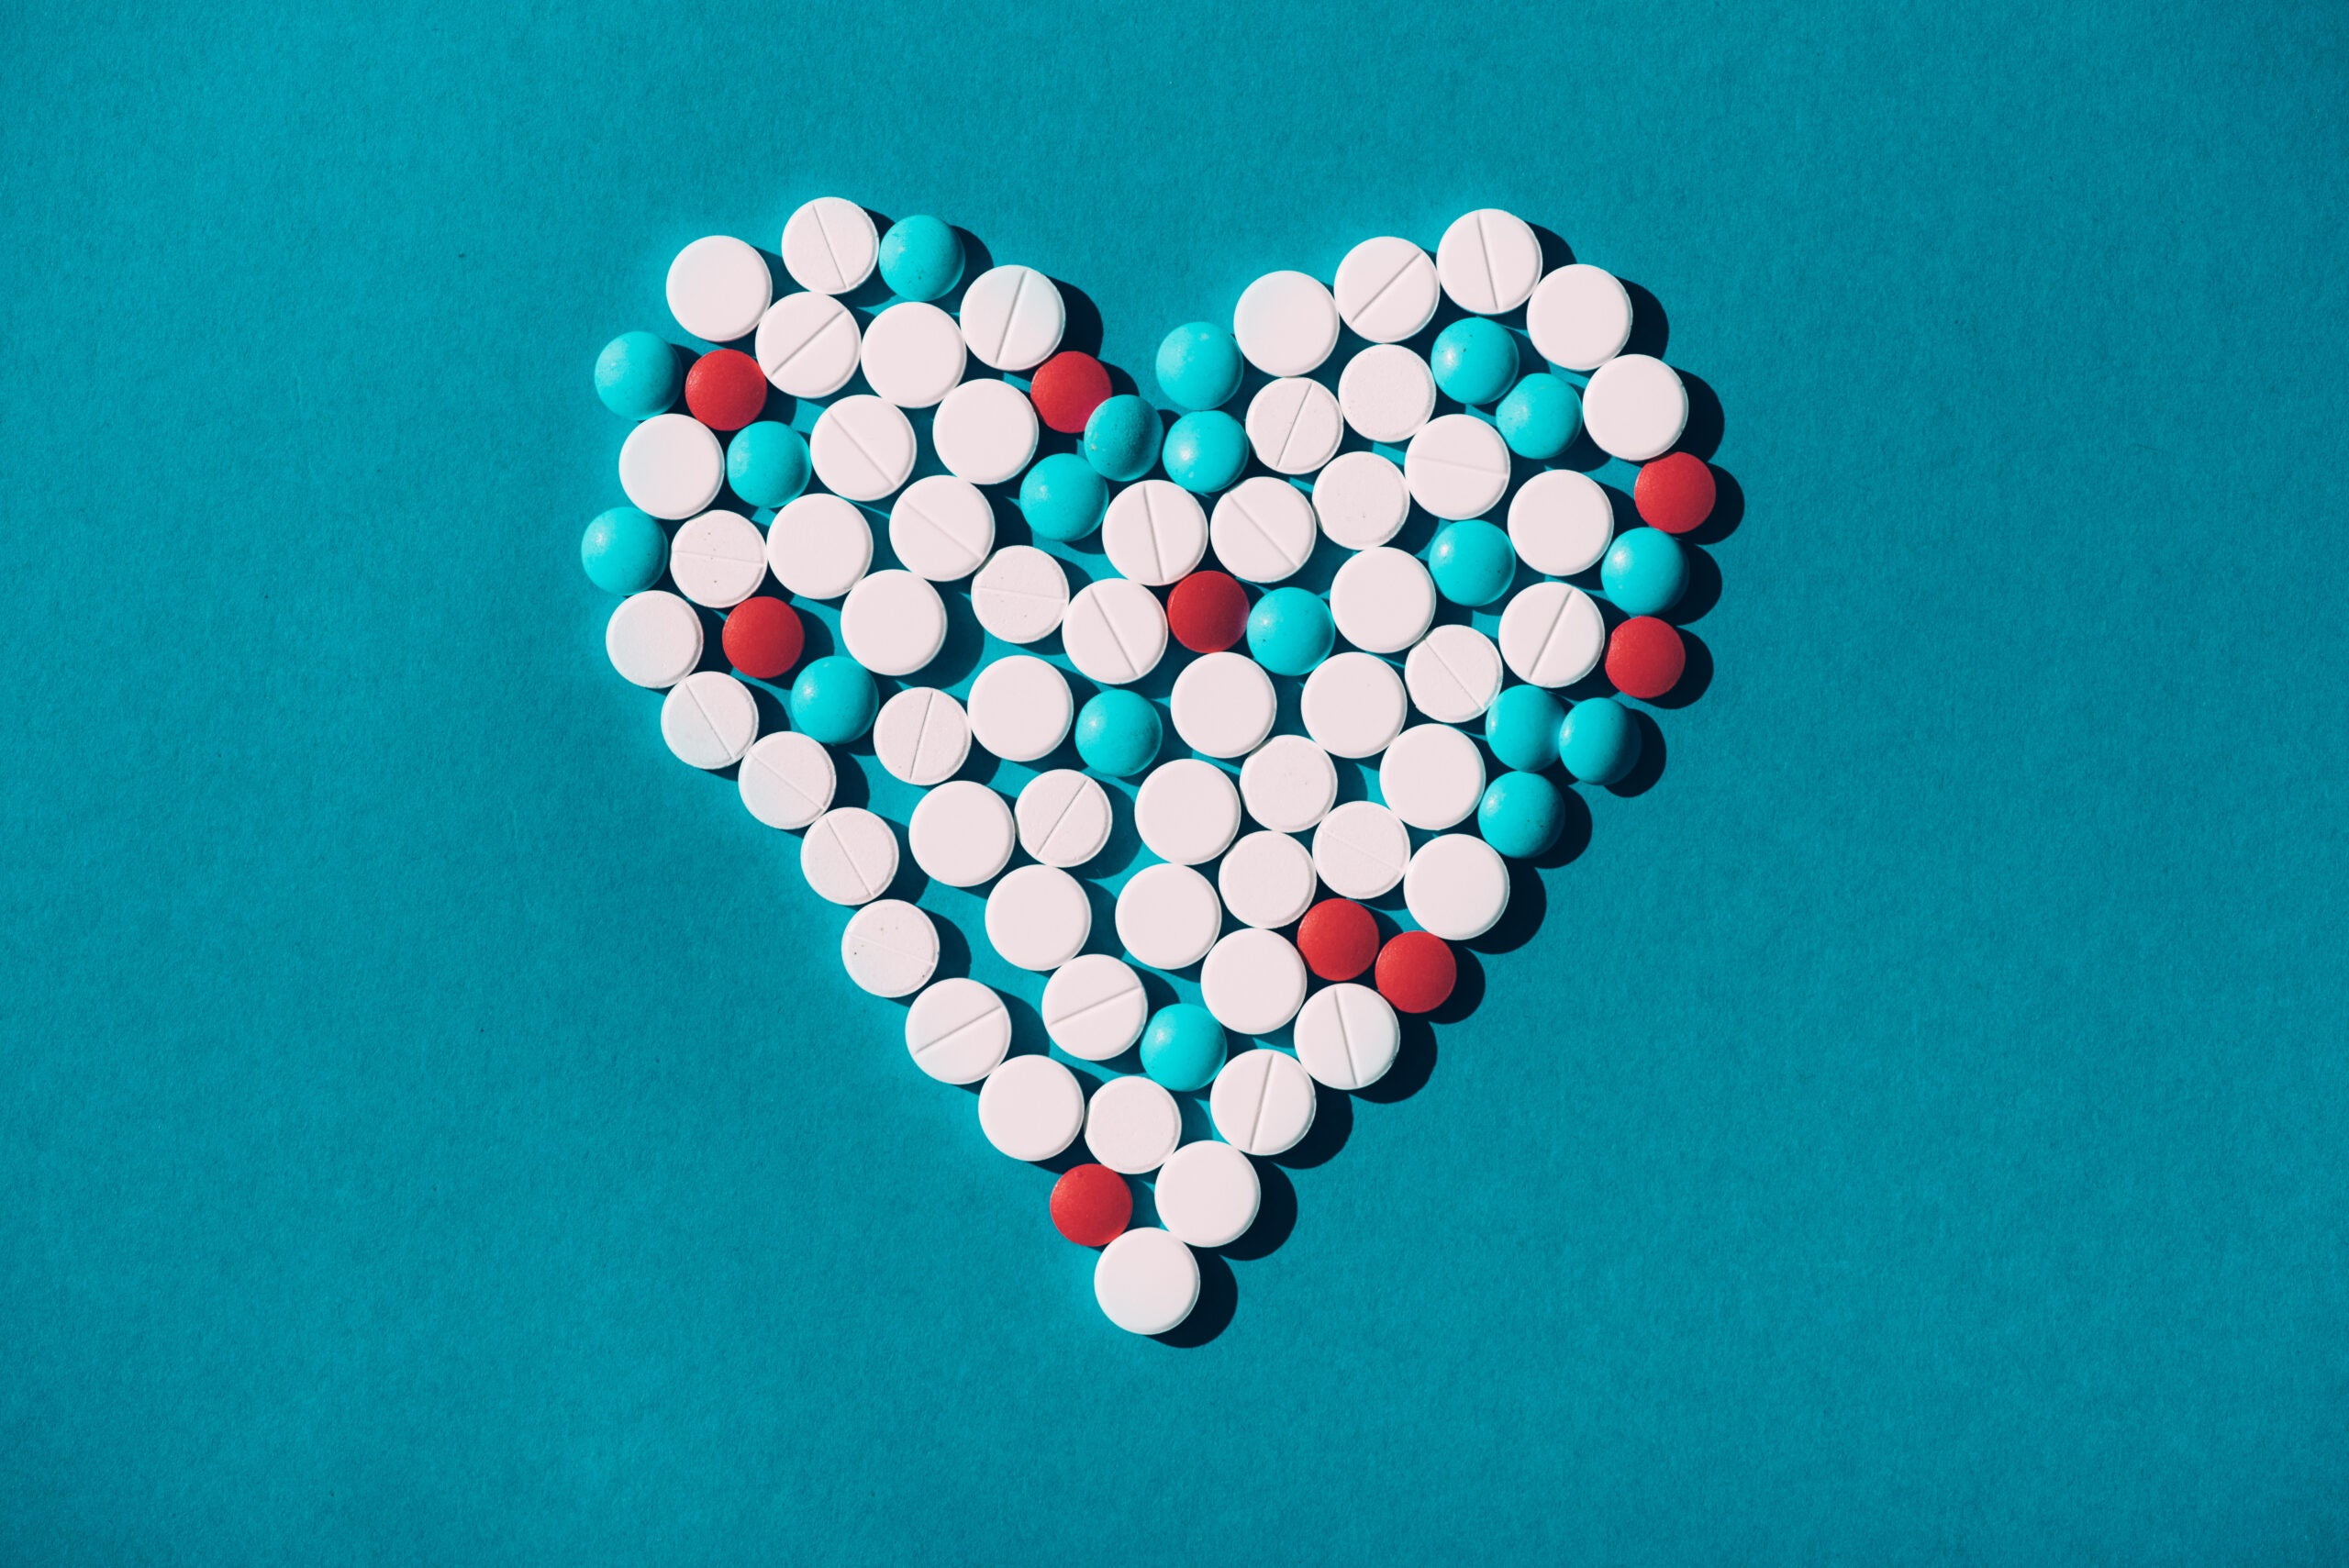 Changing your diet and taking supplements may not do anything for your heart health